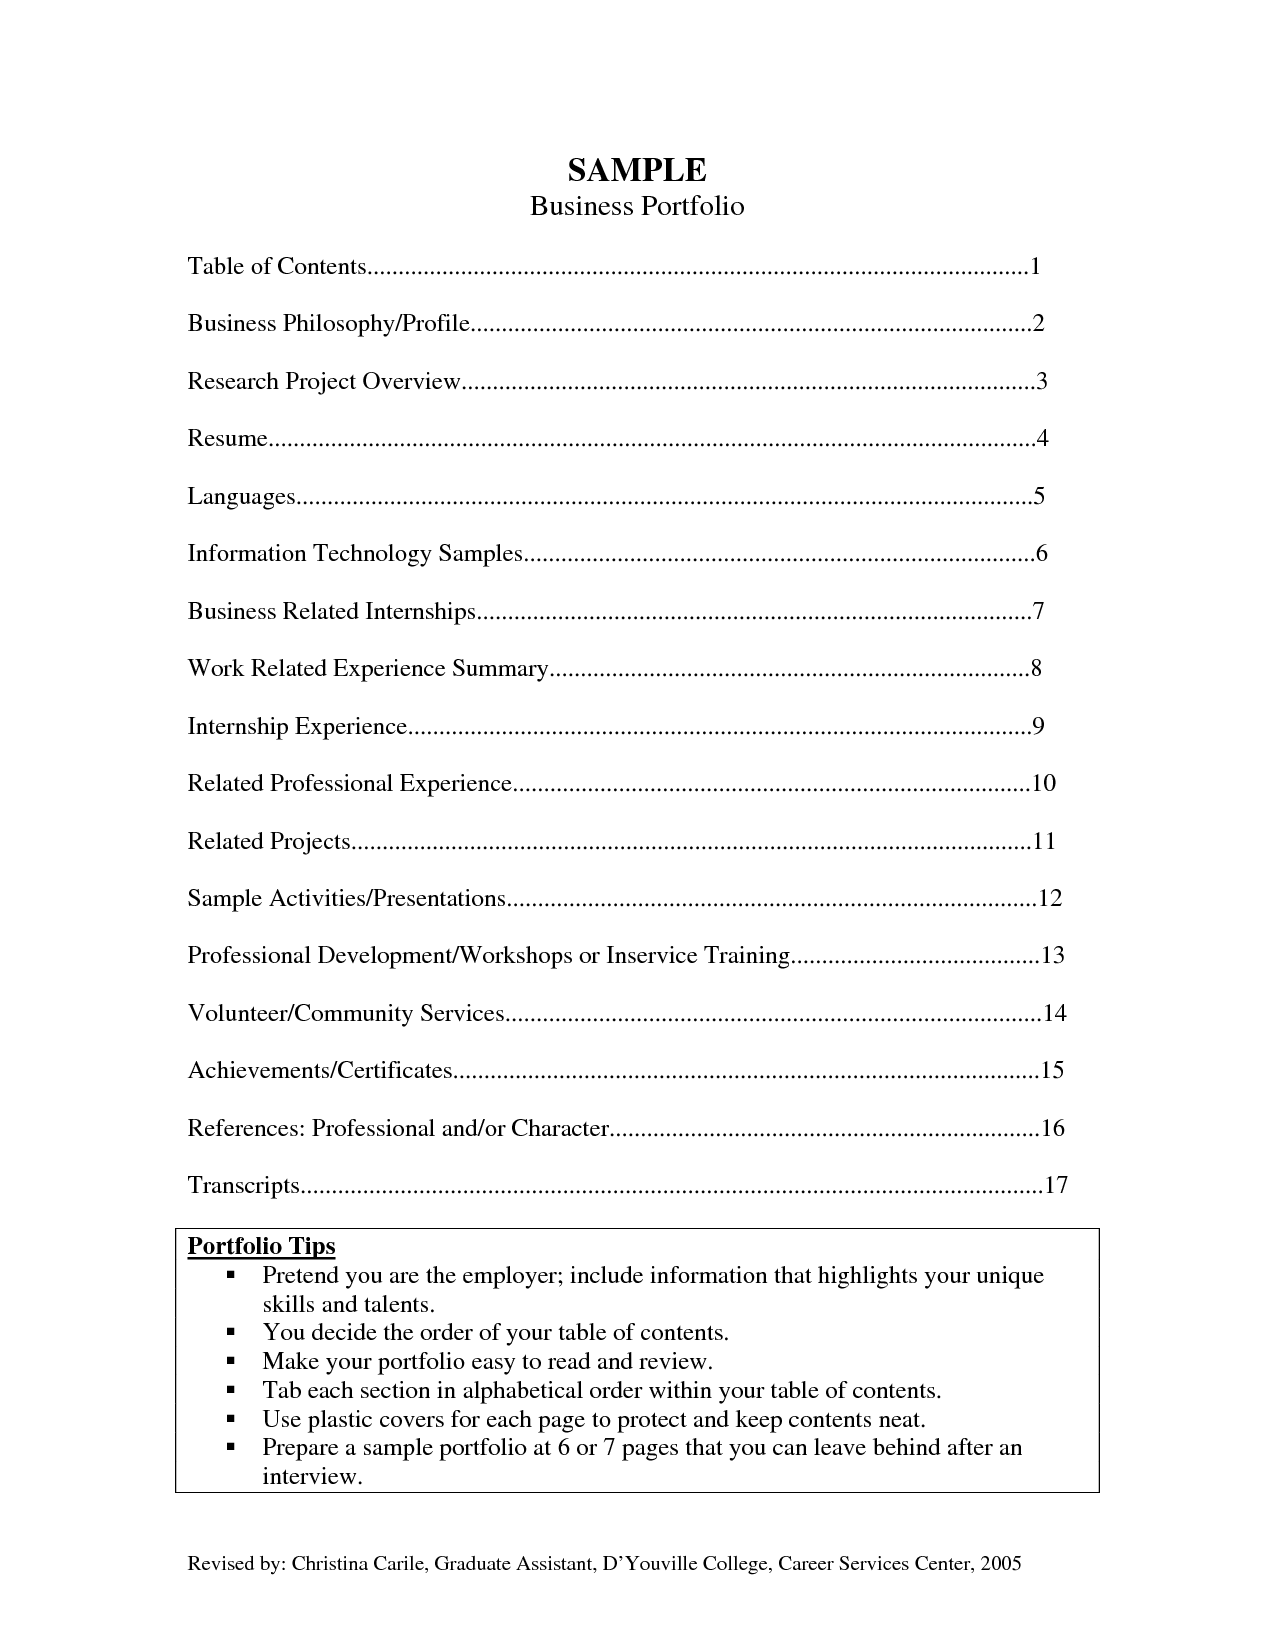 Career portfolio examples sample business career portfolio sample career portfolio examples sample business career portfolio sample flashek